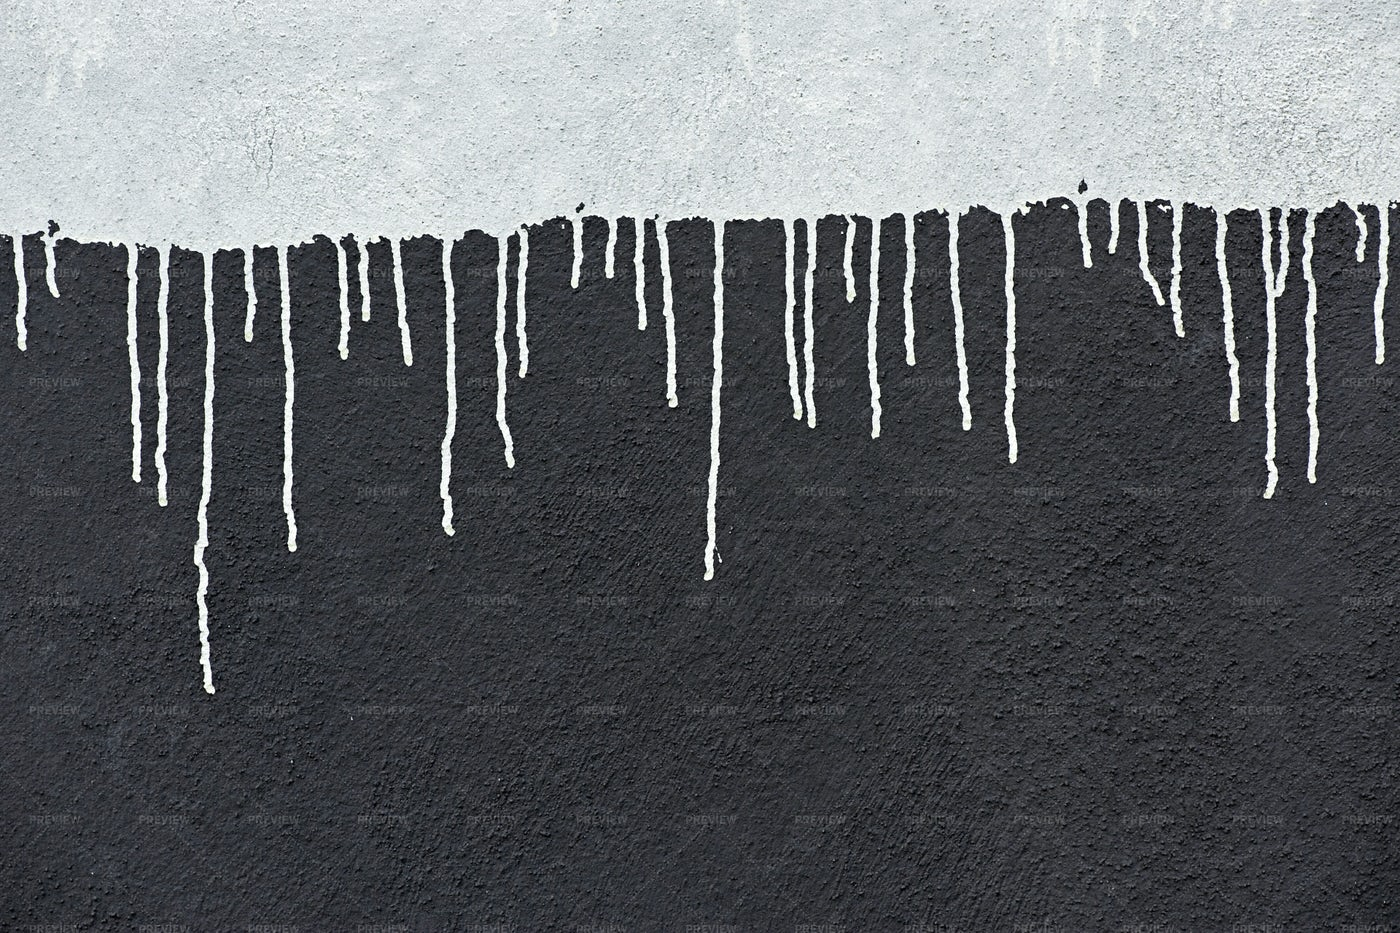 White Paint Dripping: Stock Photos